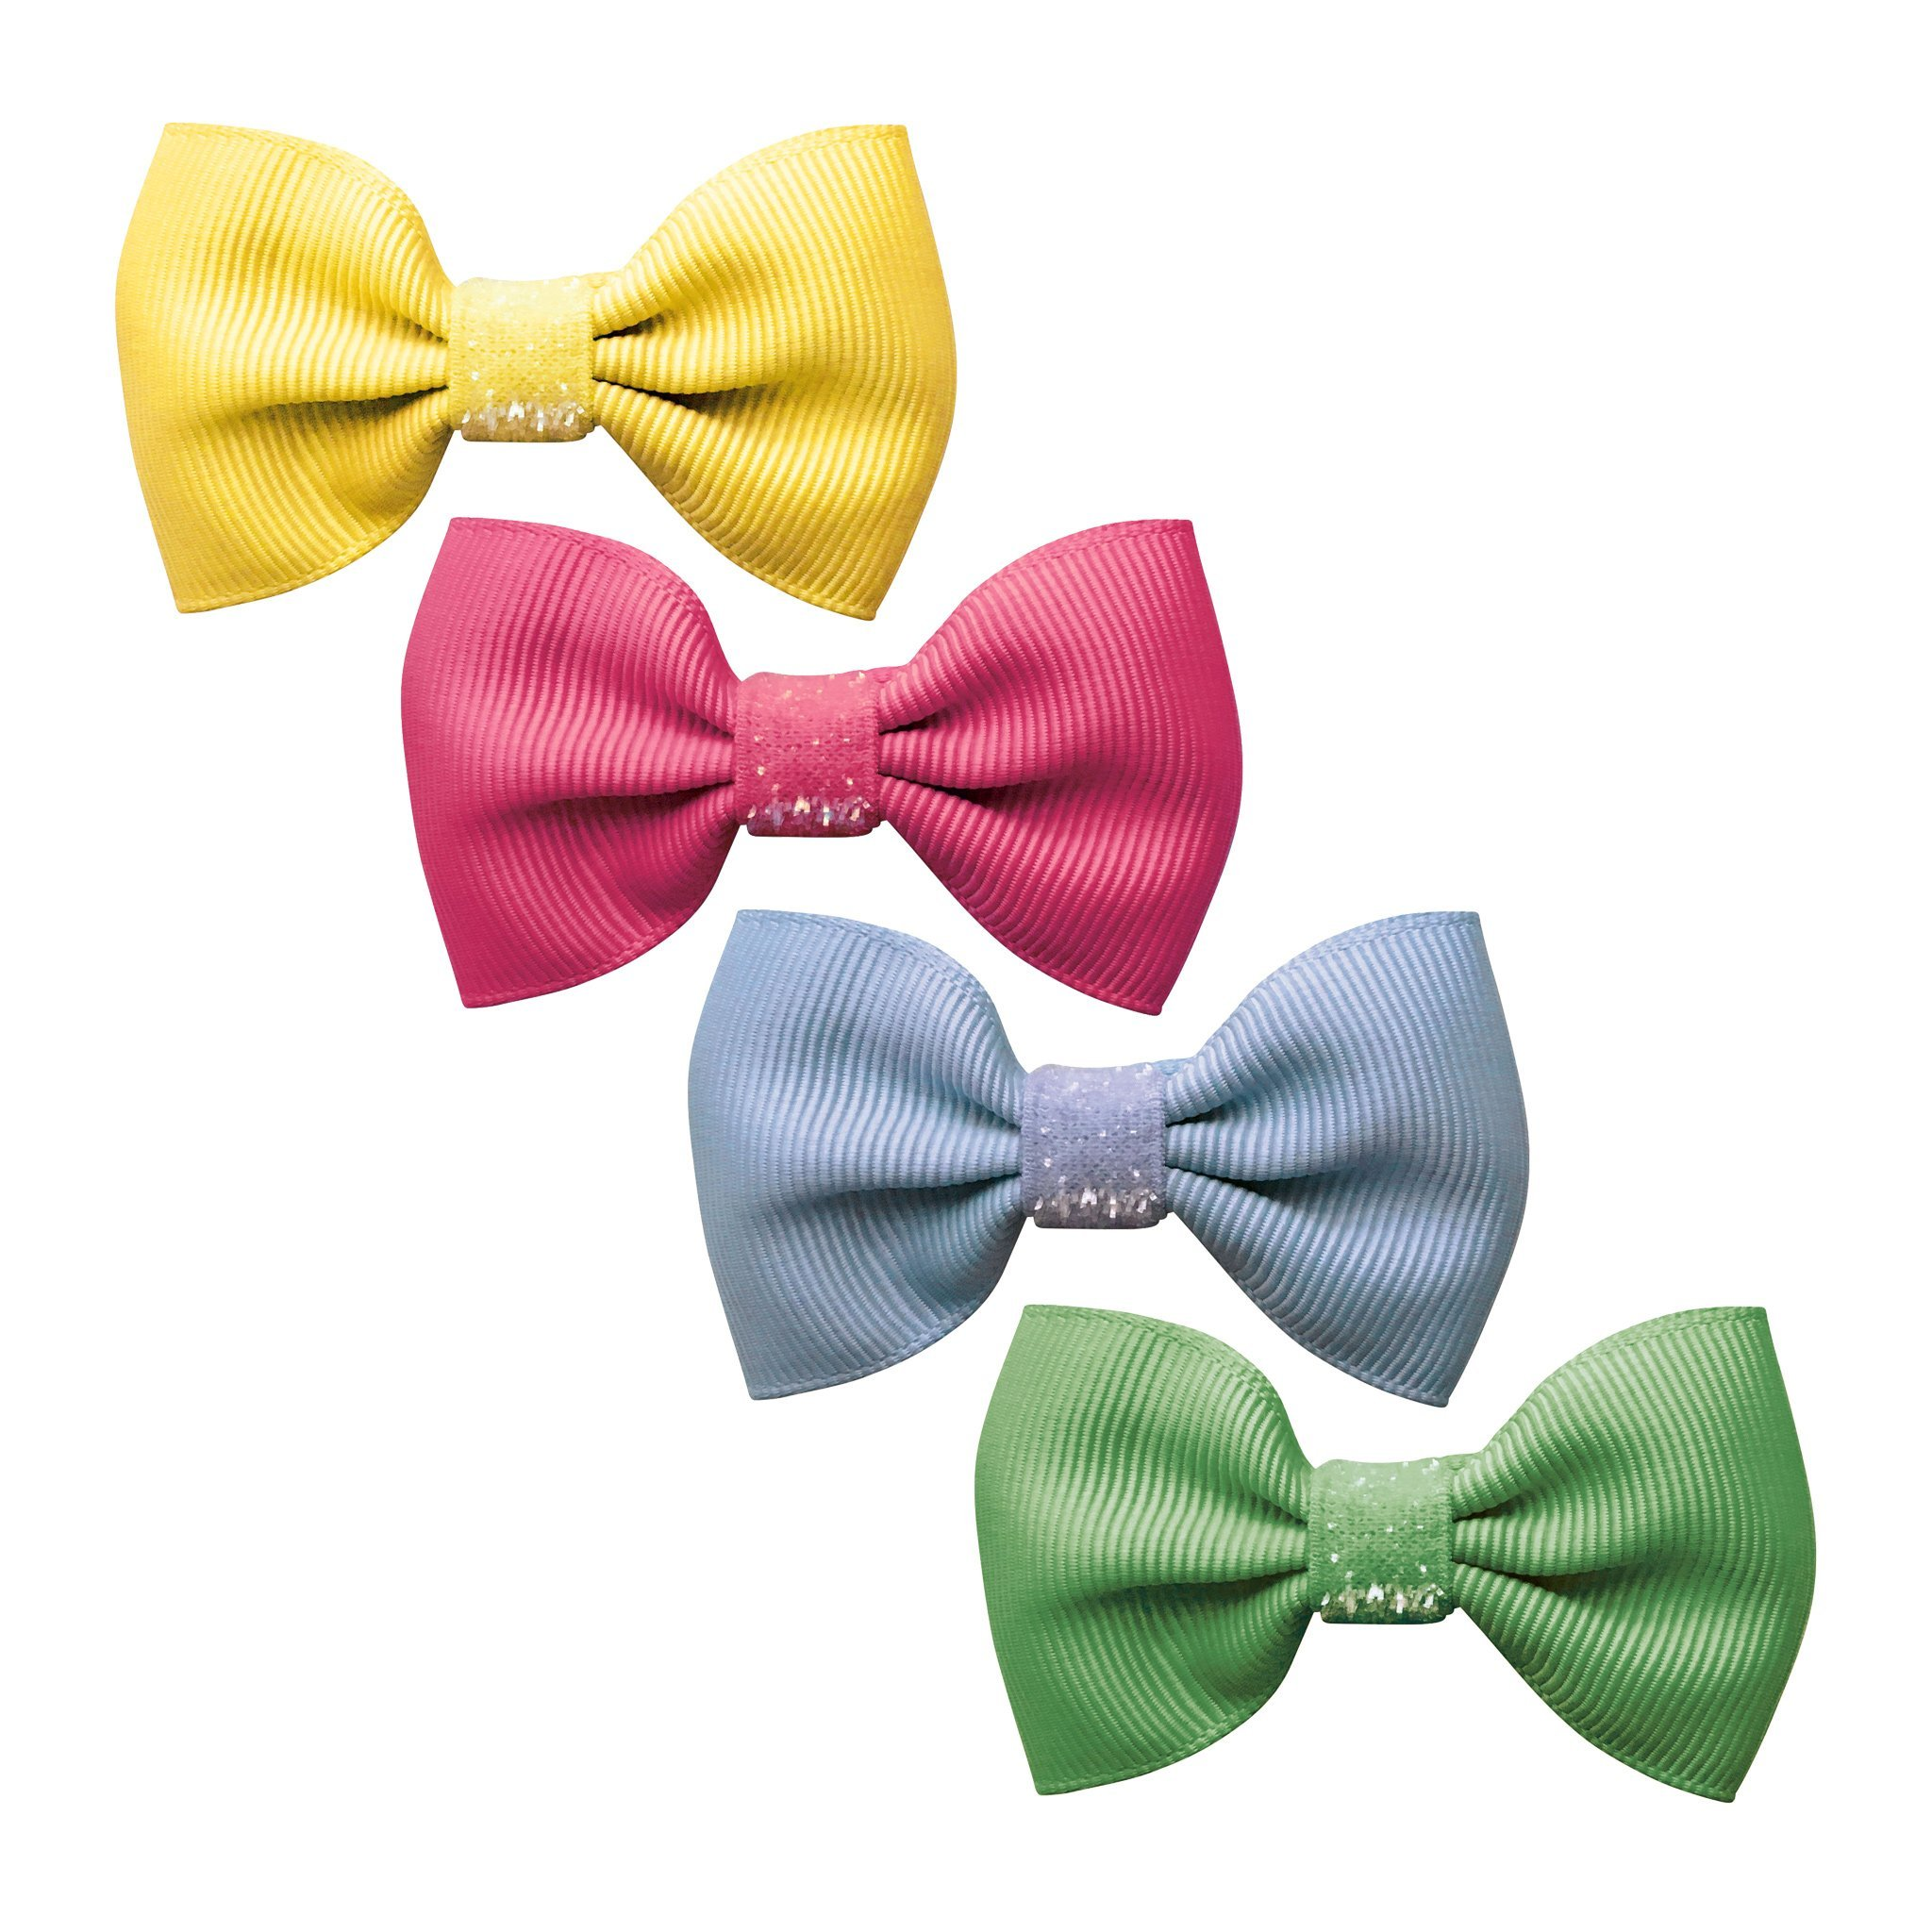 Image of Milledeux® Gift set - 4 Small bowtie bows - alligator clip - Colored Glitter